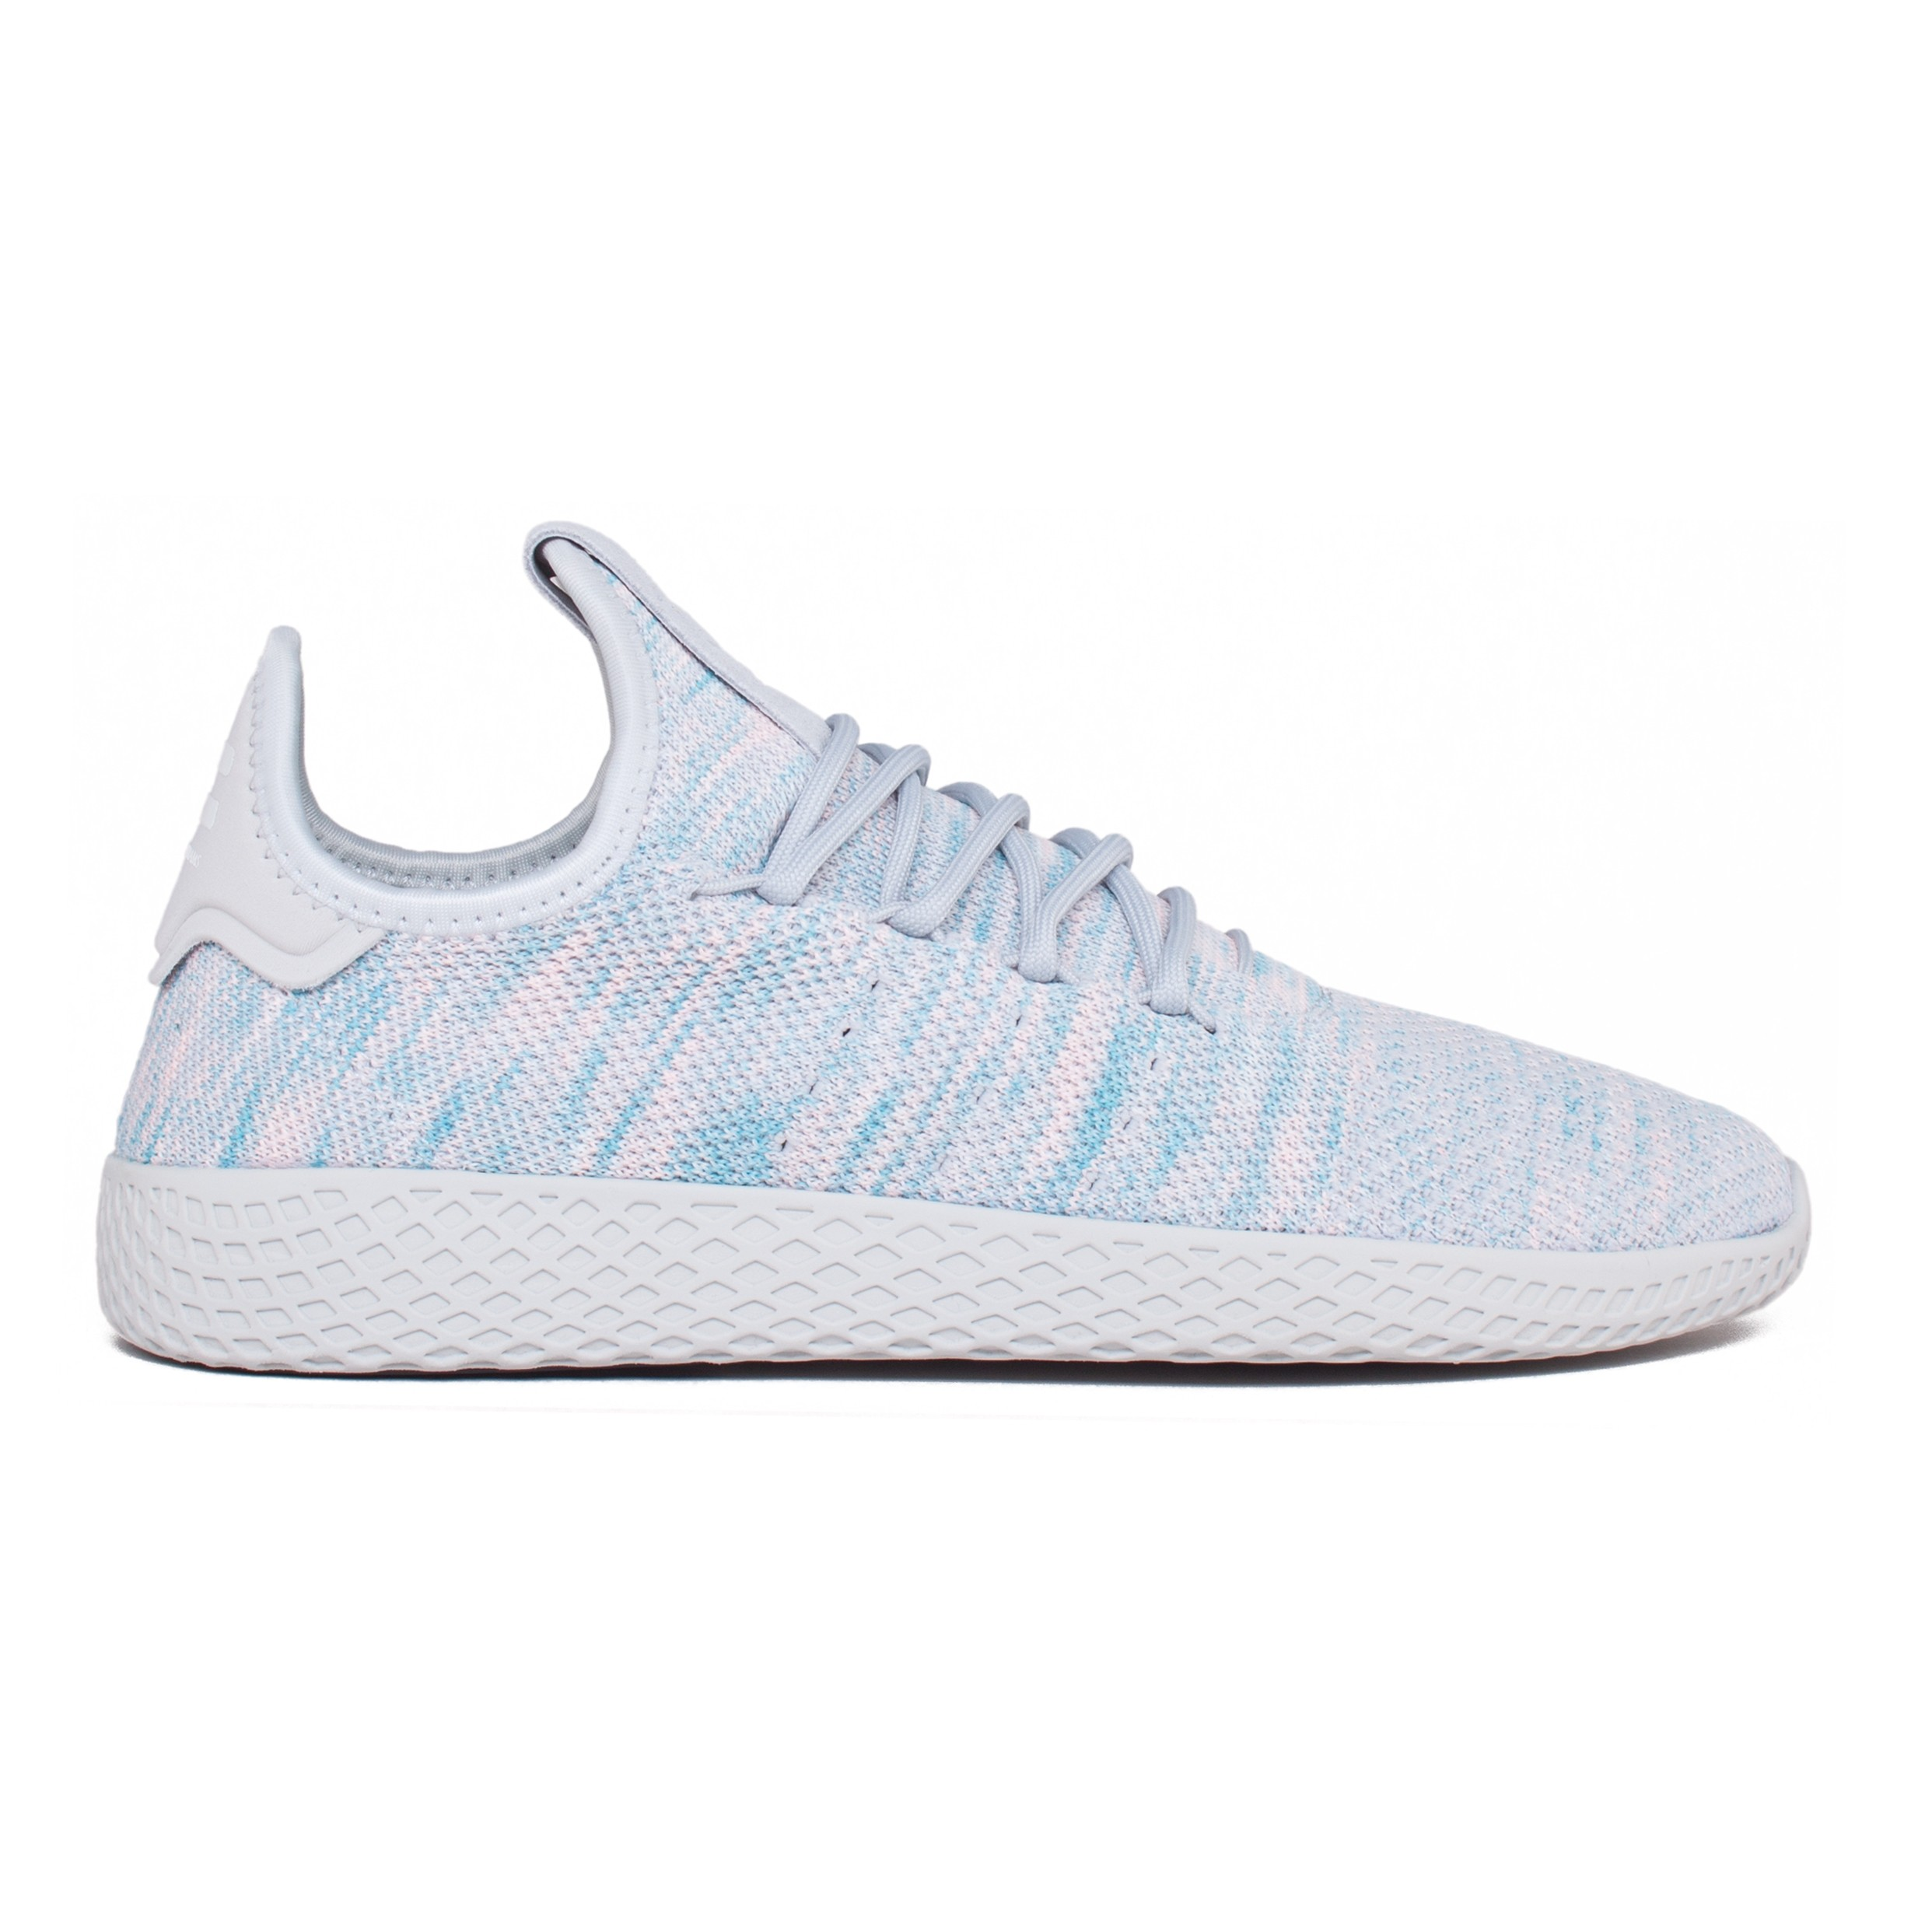 cc19d2bdc5c1 adidas Originals Pharrell Williams Tennis Hu (Noble Ink Semi Frozen ...